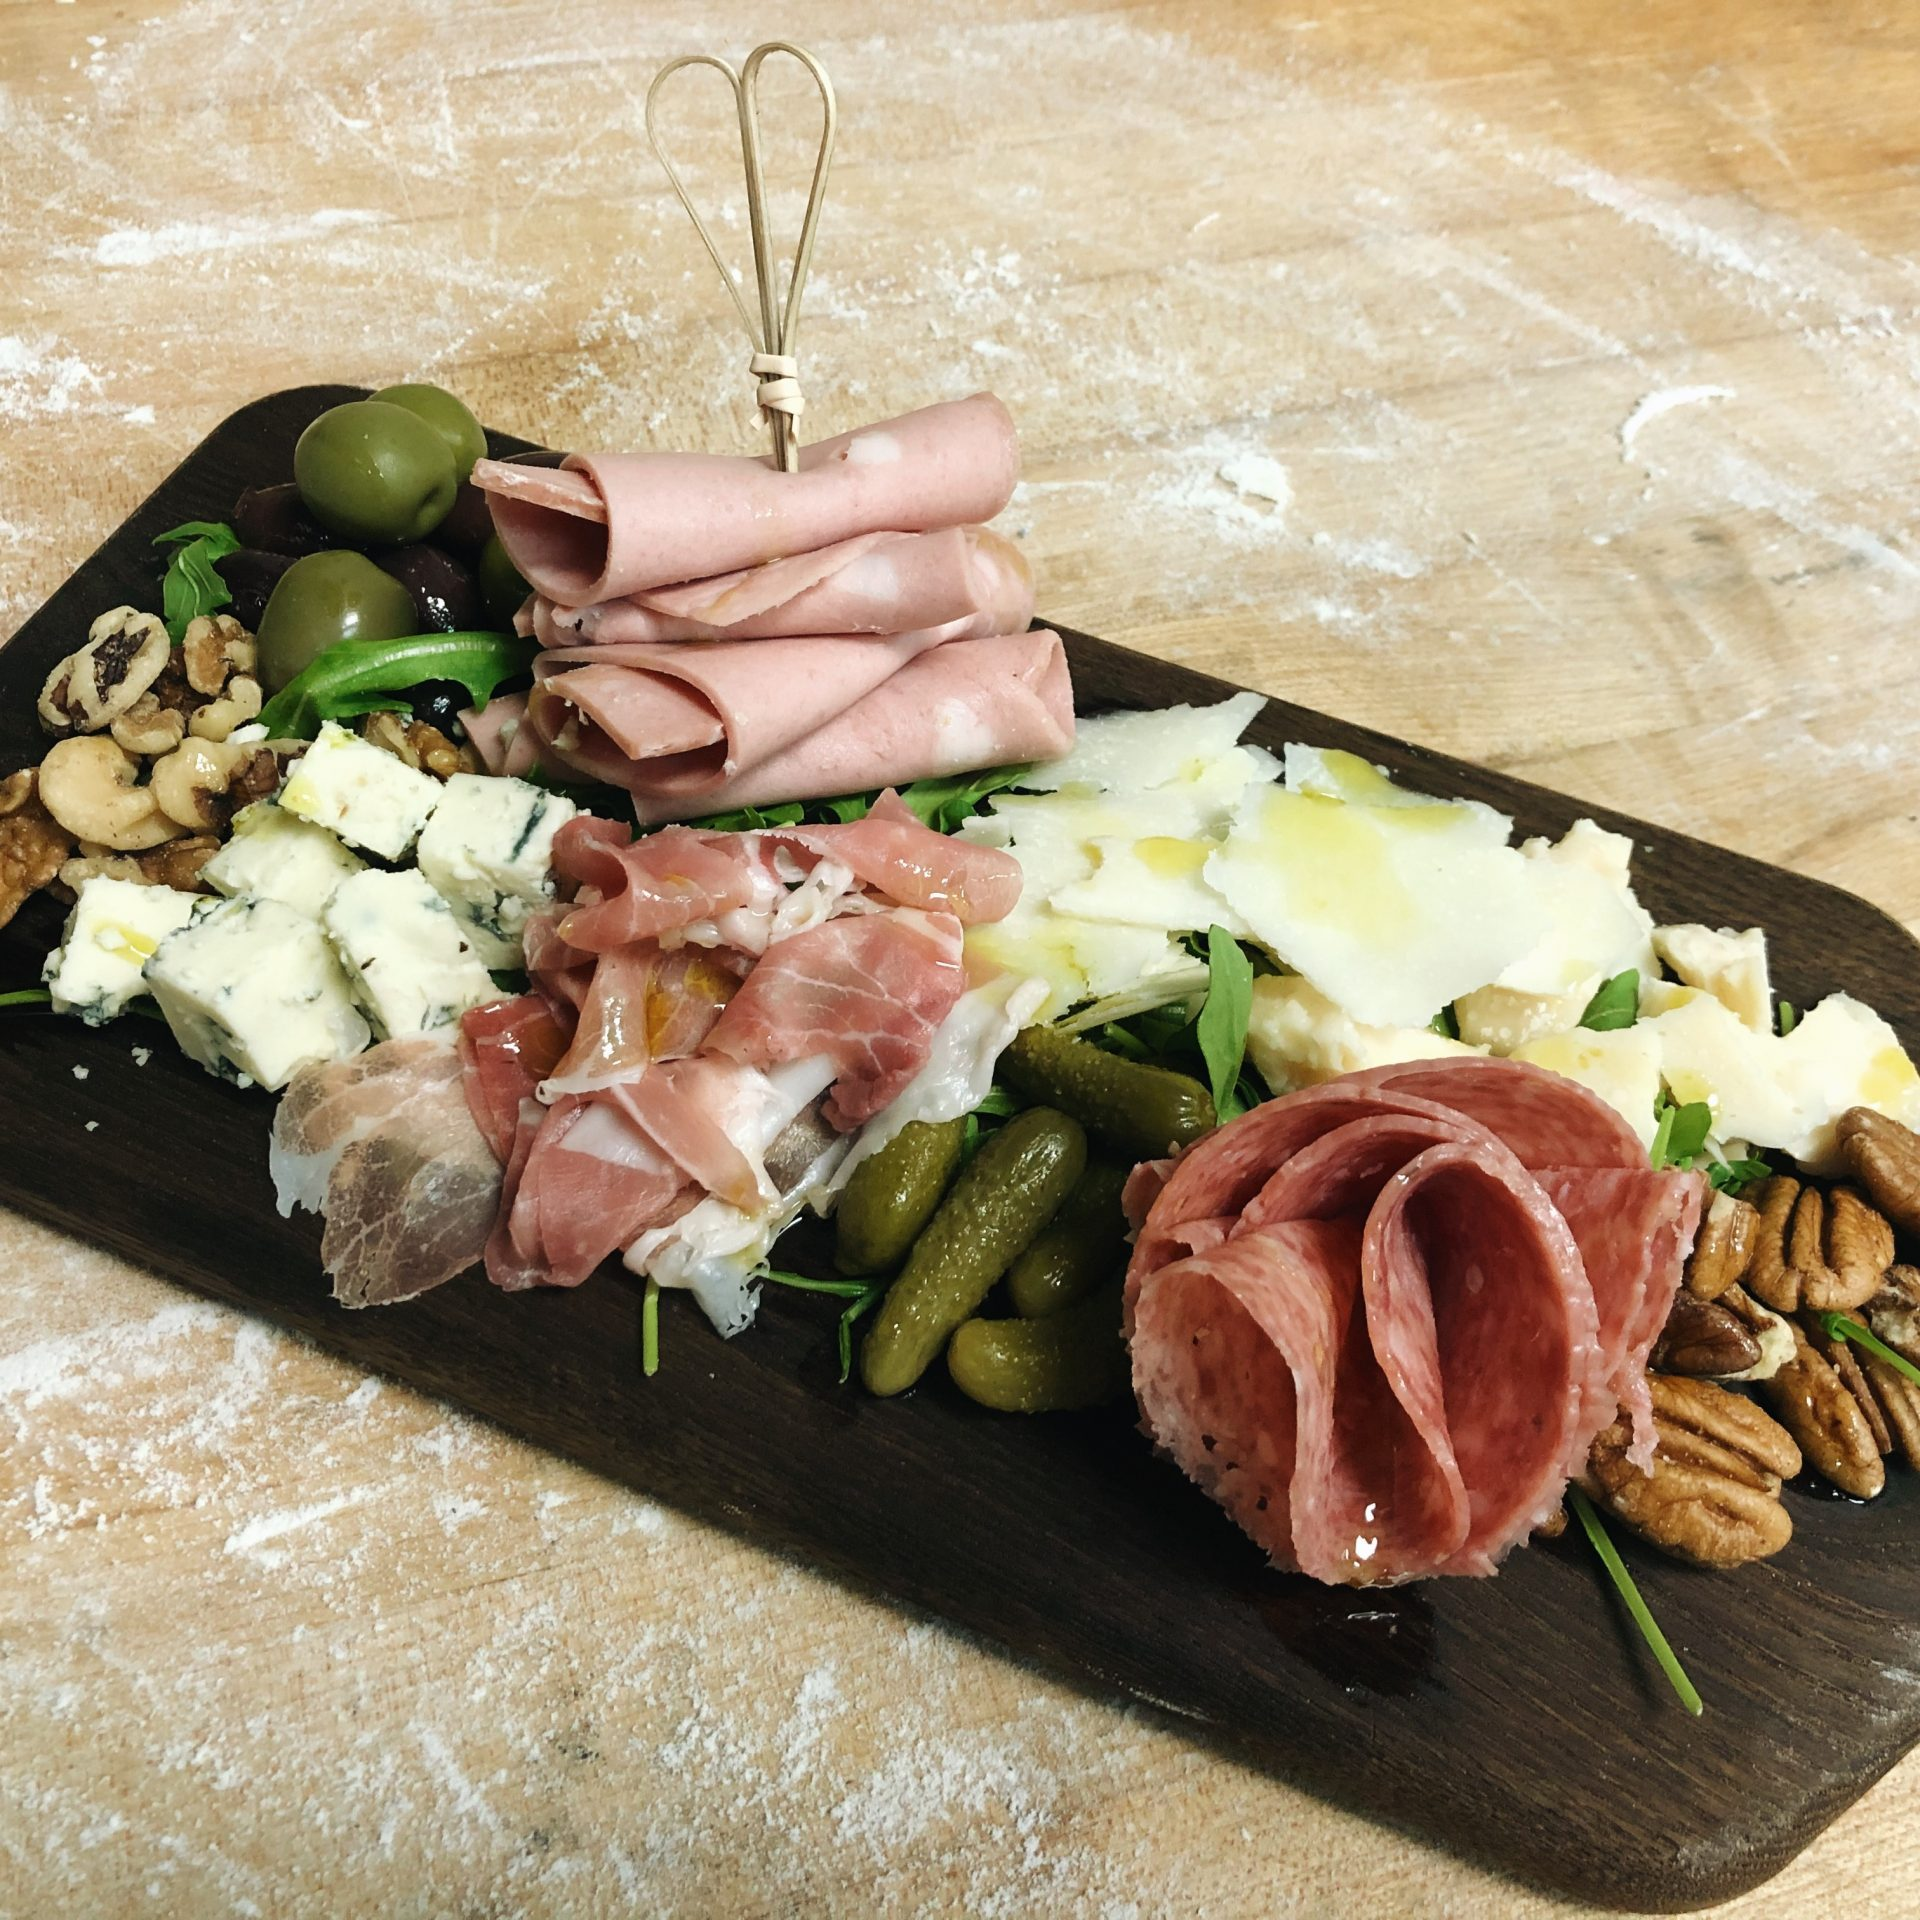 Meats, cheeses, nuts, olives, pickles.